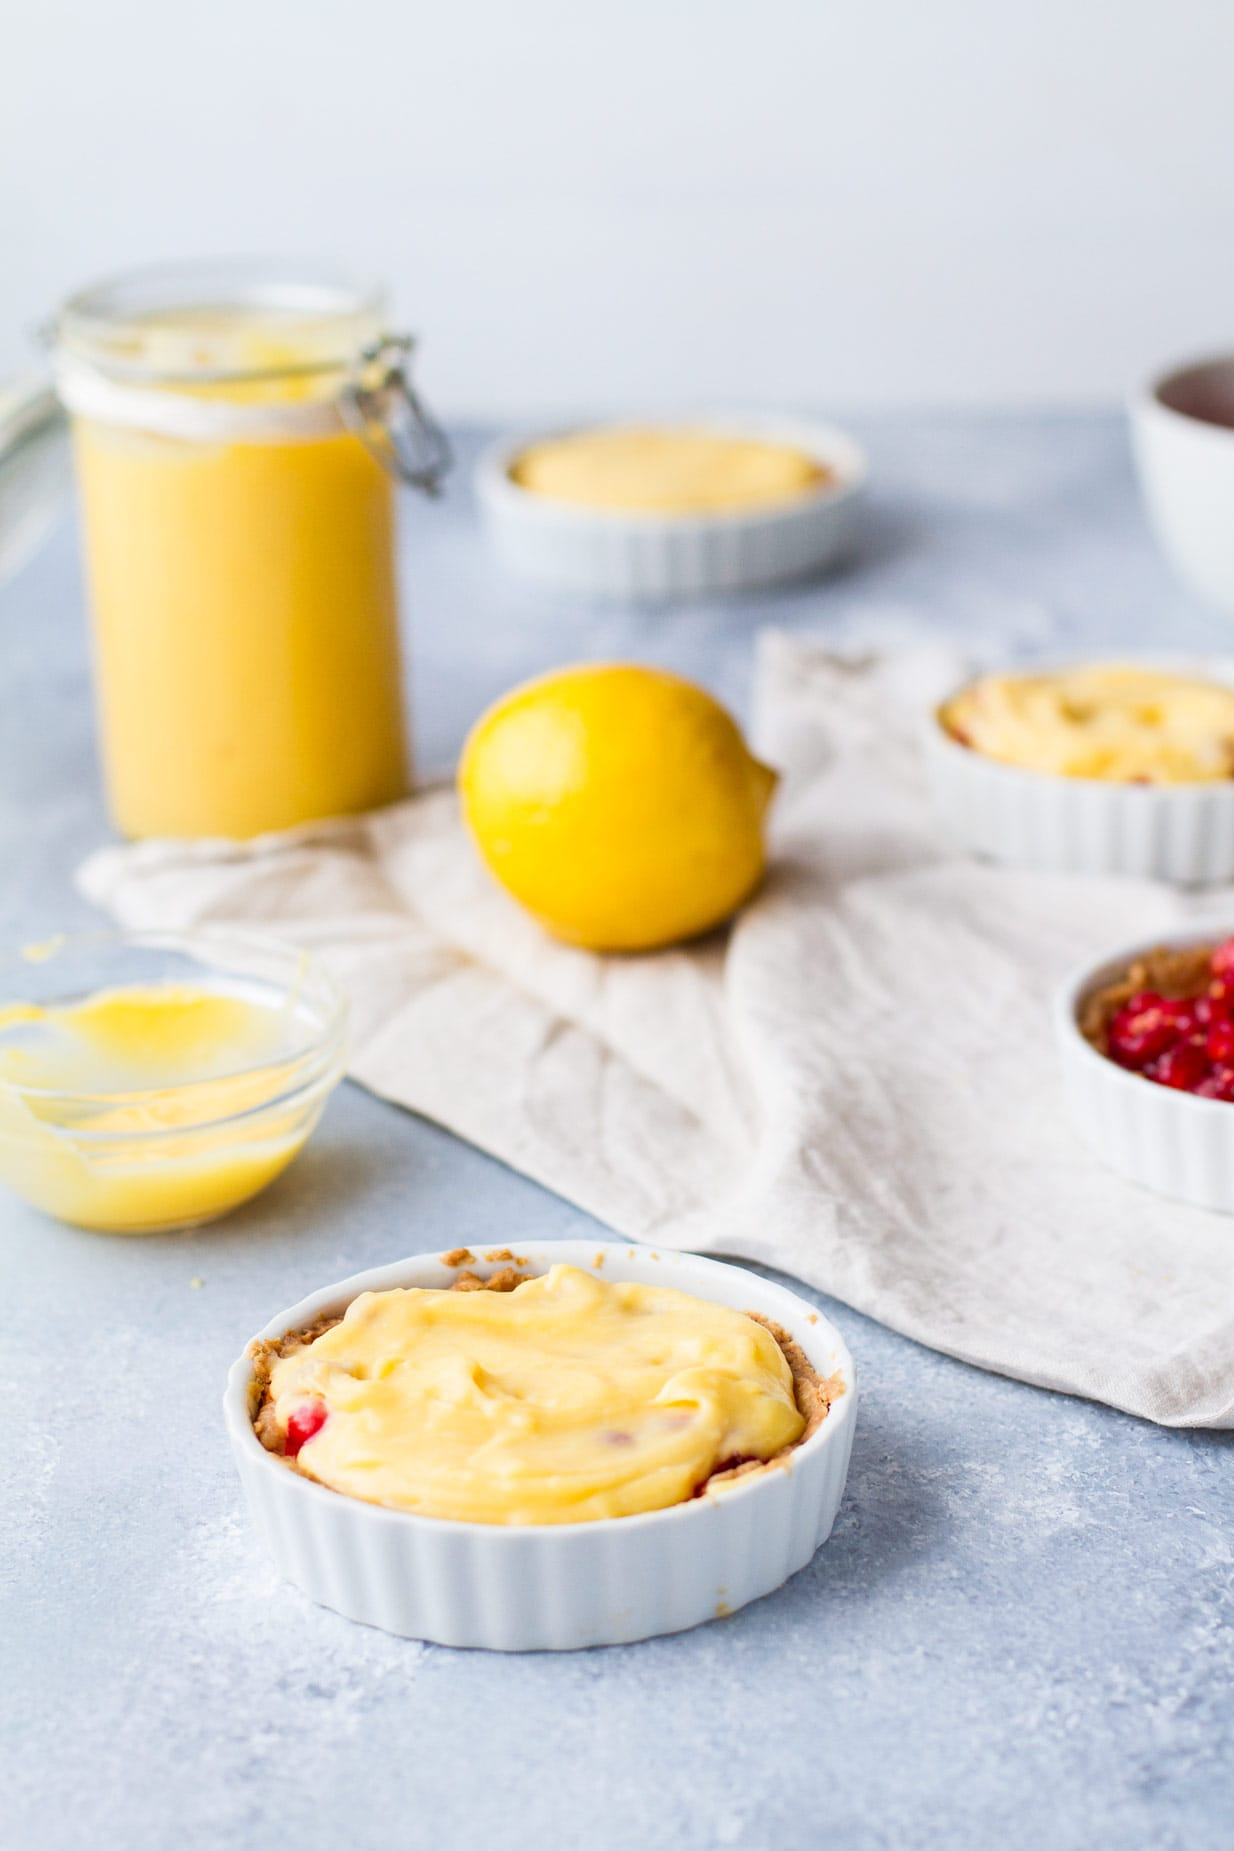 Red Currant and Lemon Curd Brûlée Tart